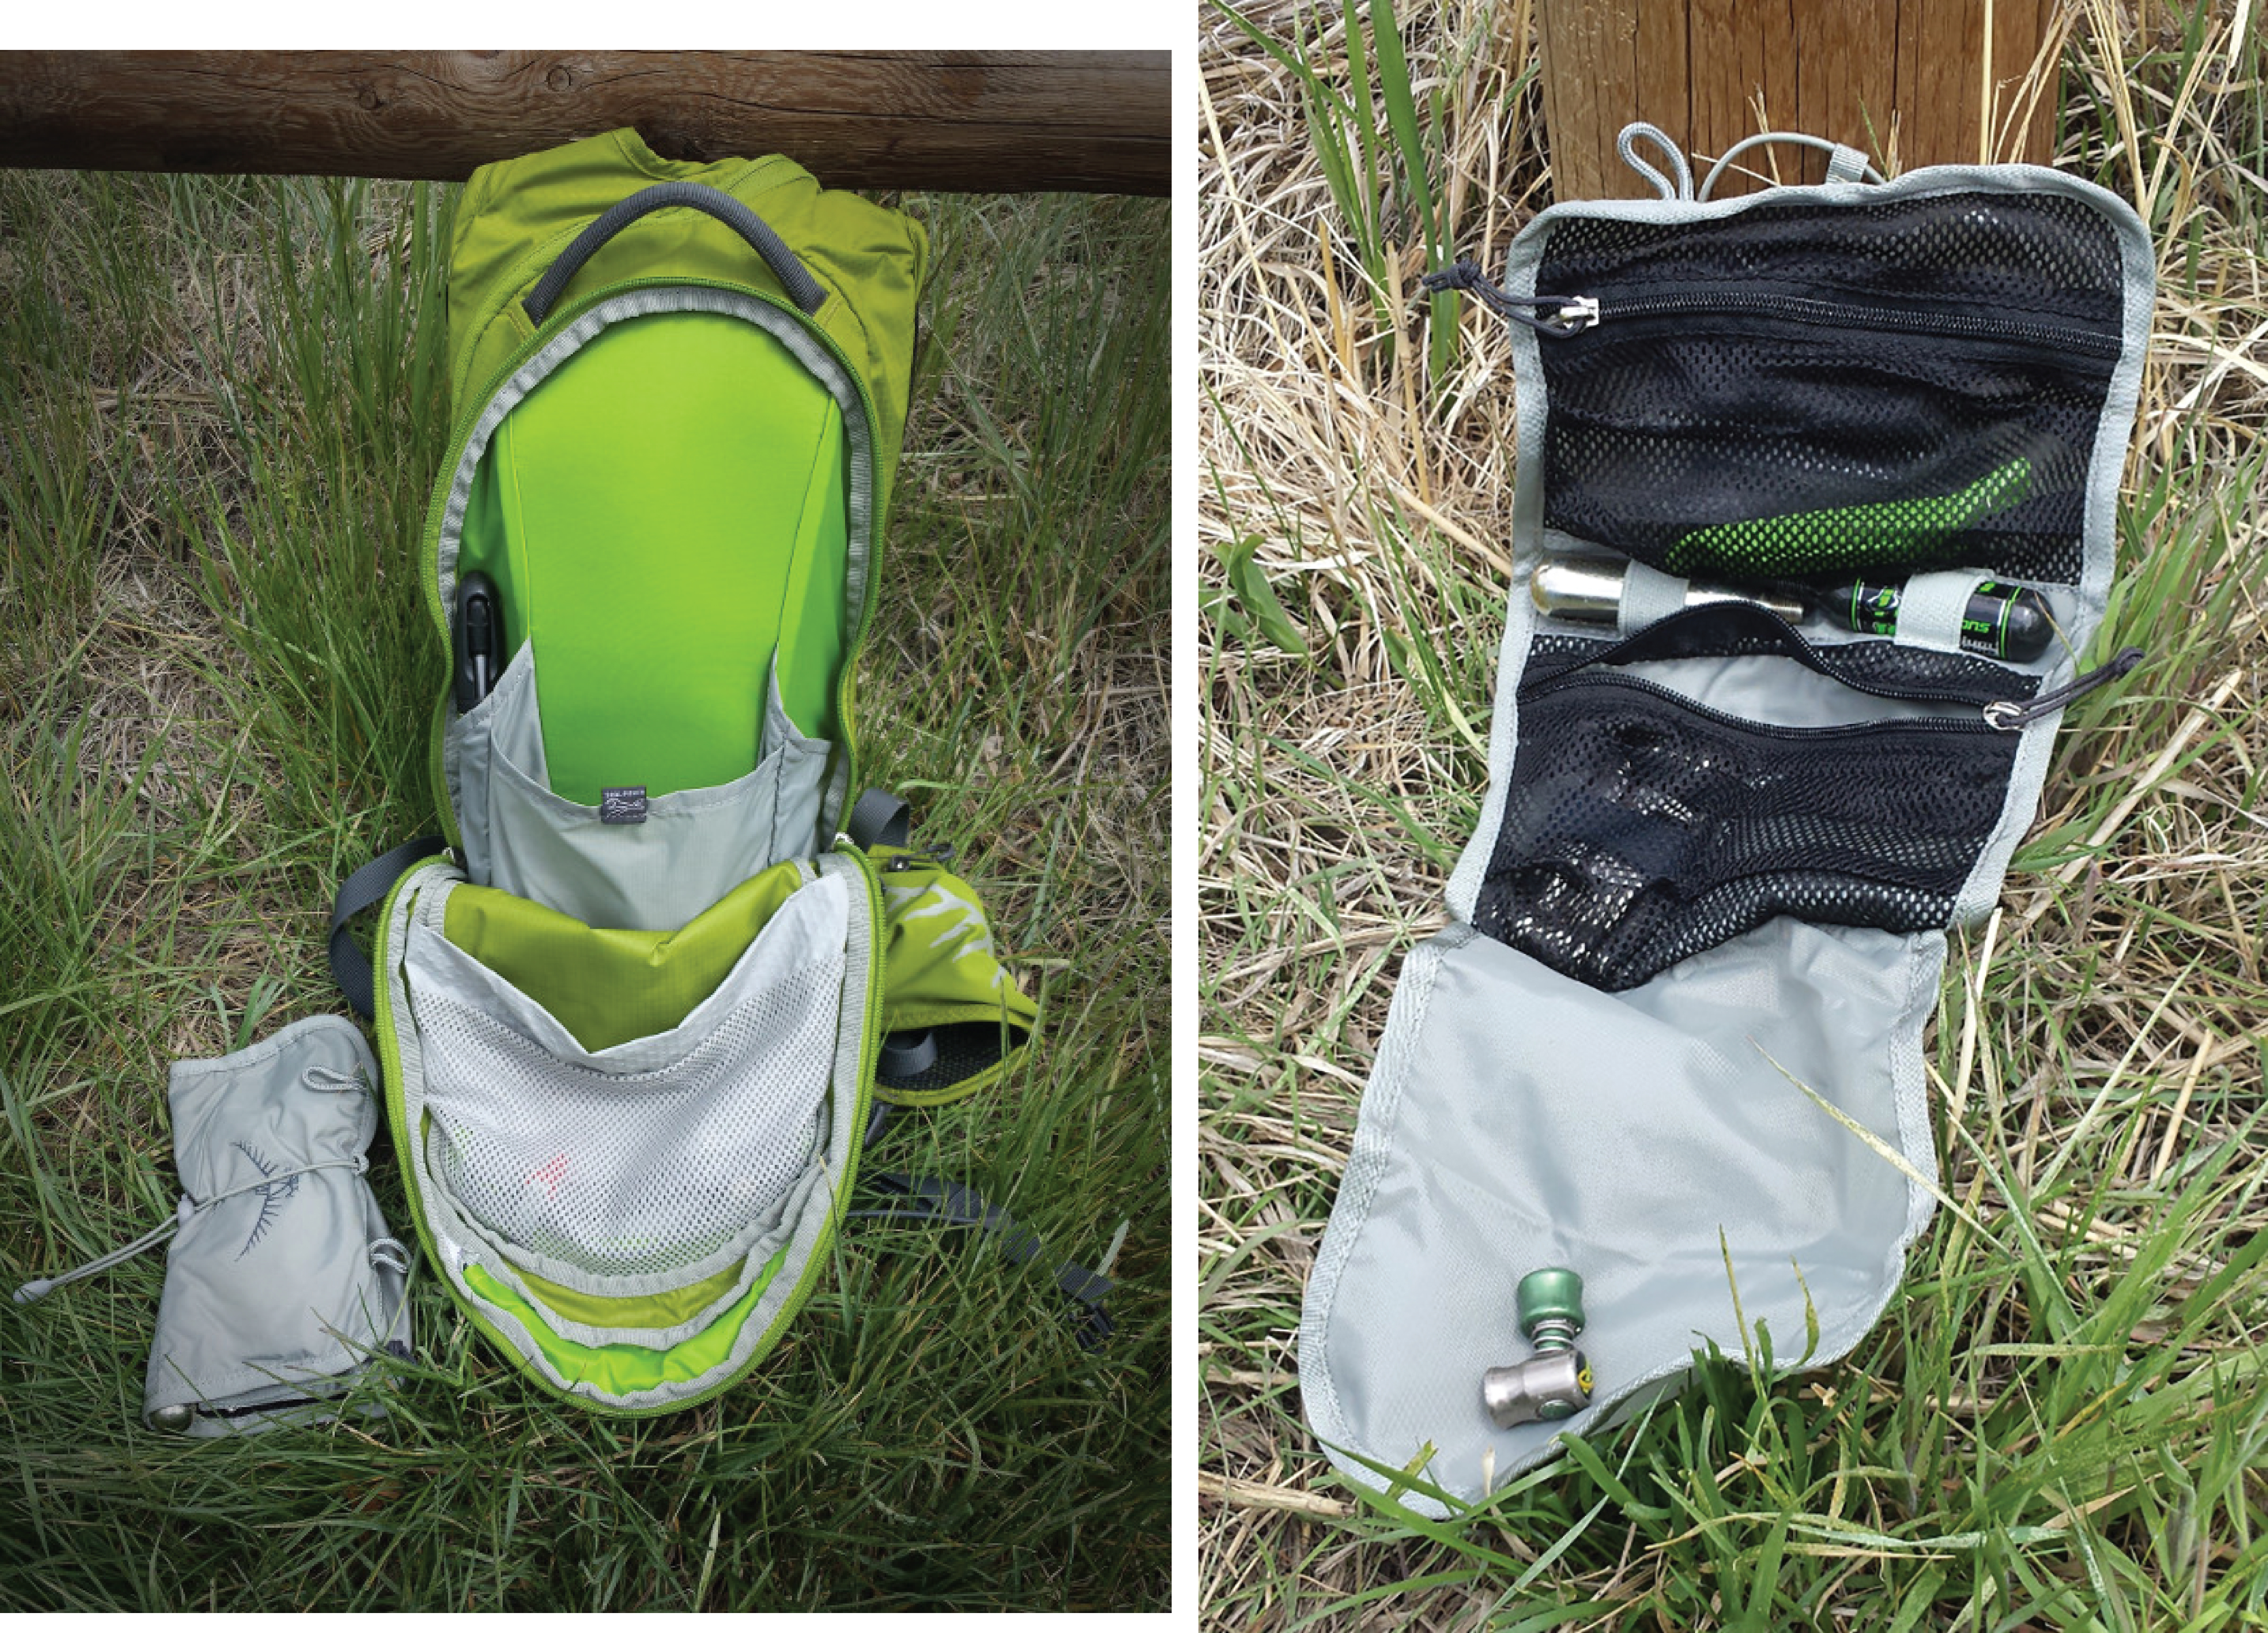 Many hydration packs include small pockets for organization, and some come with a tool roll. Photos: Corey Maddocks